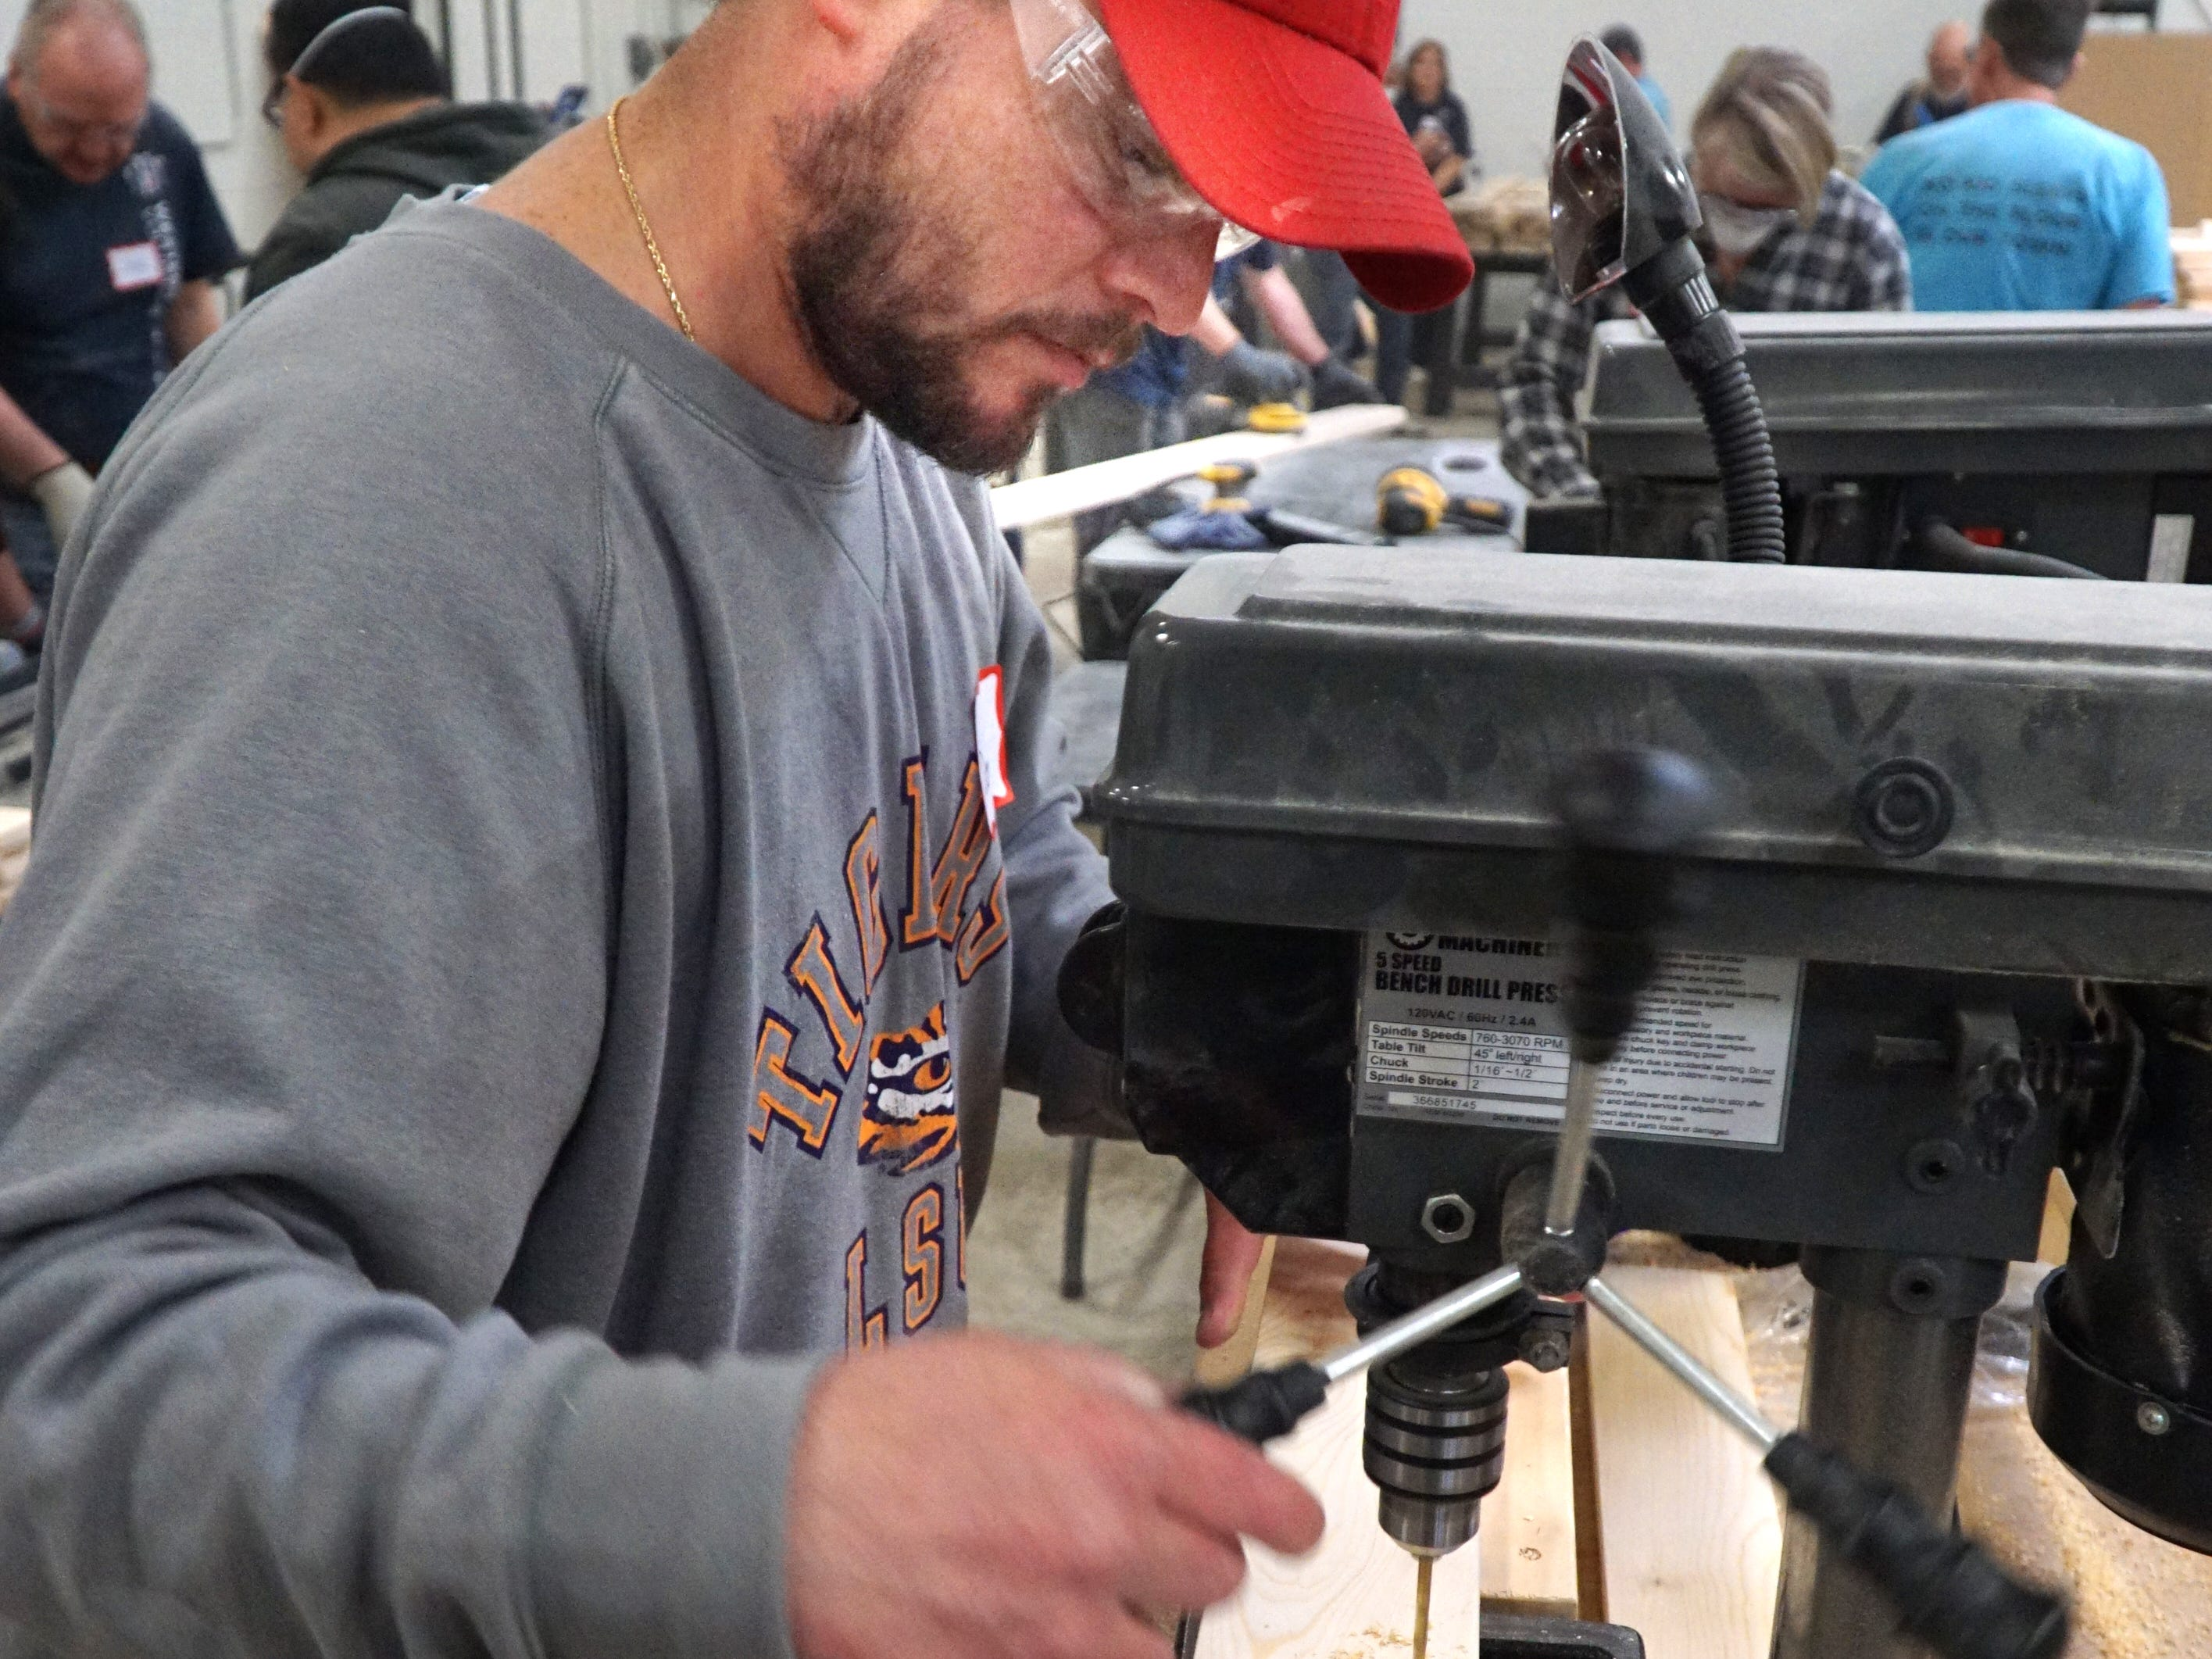 Derek Schraffenberger uses a drill press to make some precise holes in wood for the bunk bed building party in Livonia on April 13.